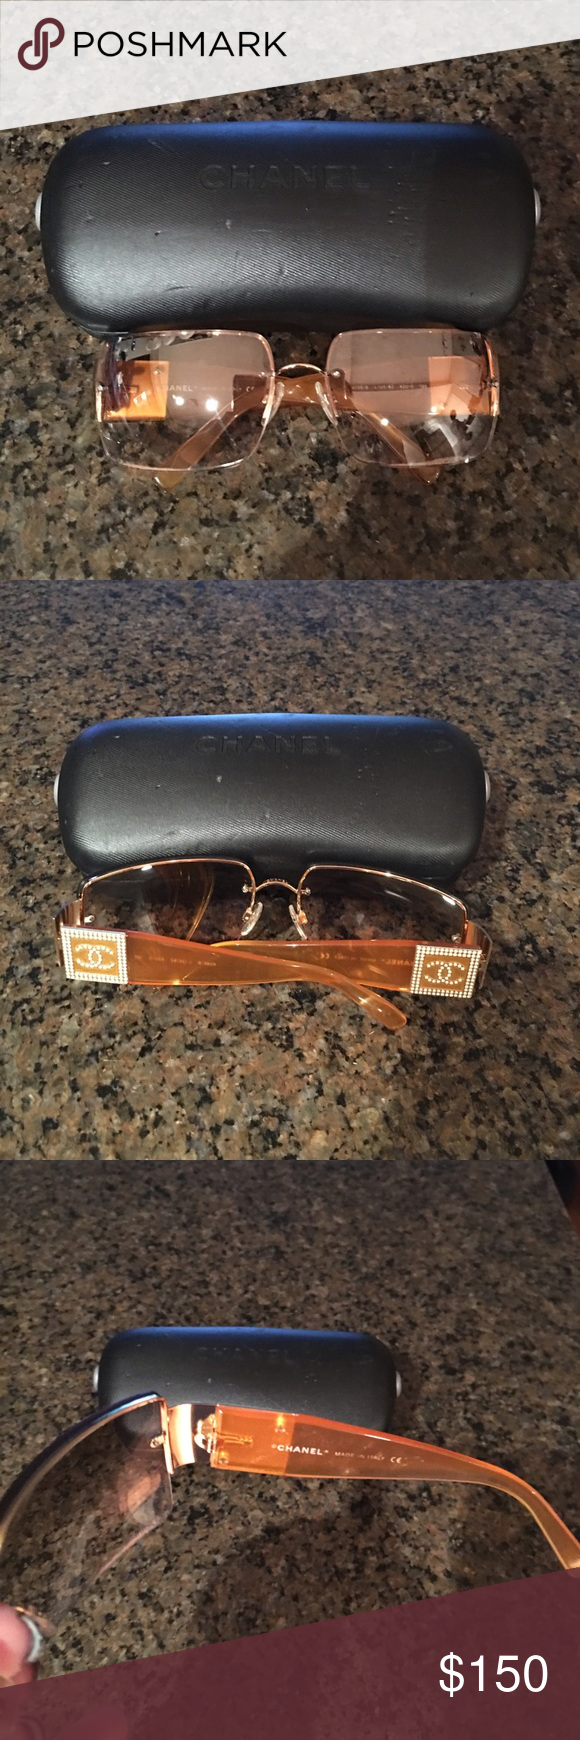 Chanel Sunglasses Authentic.  Used.  Chanel sunglasses in orange with jeweled detail accents. Chanel Accessories Sunglasses